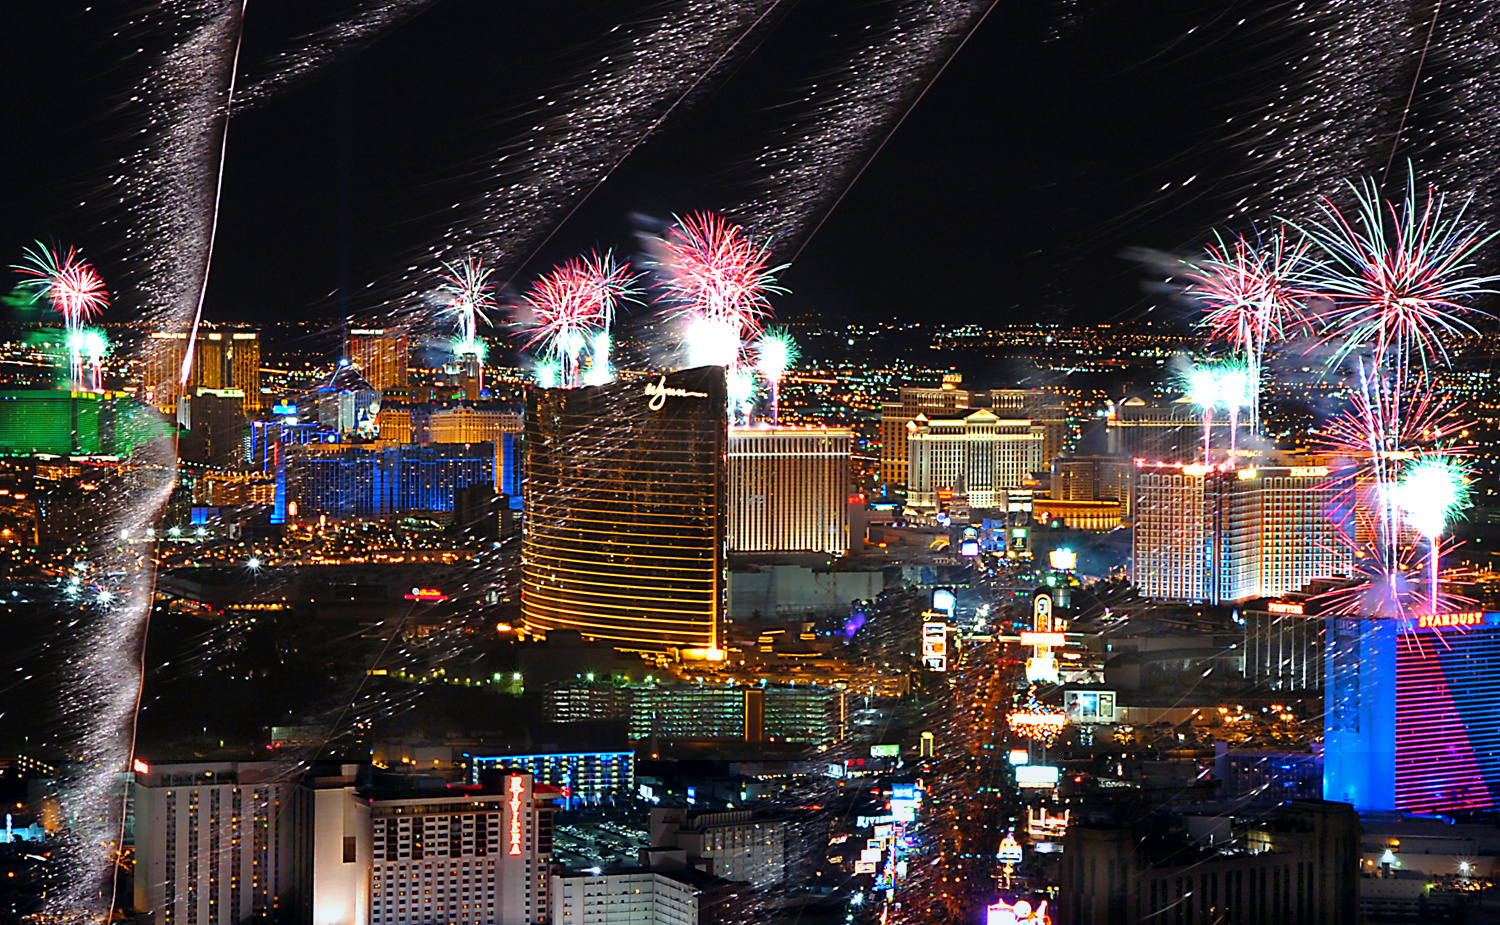 Las Vegas on New Year's Eve